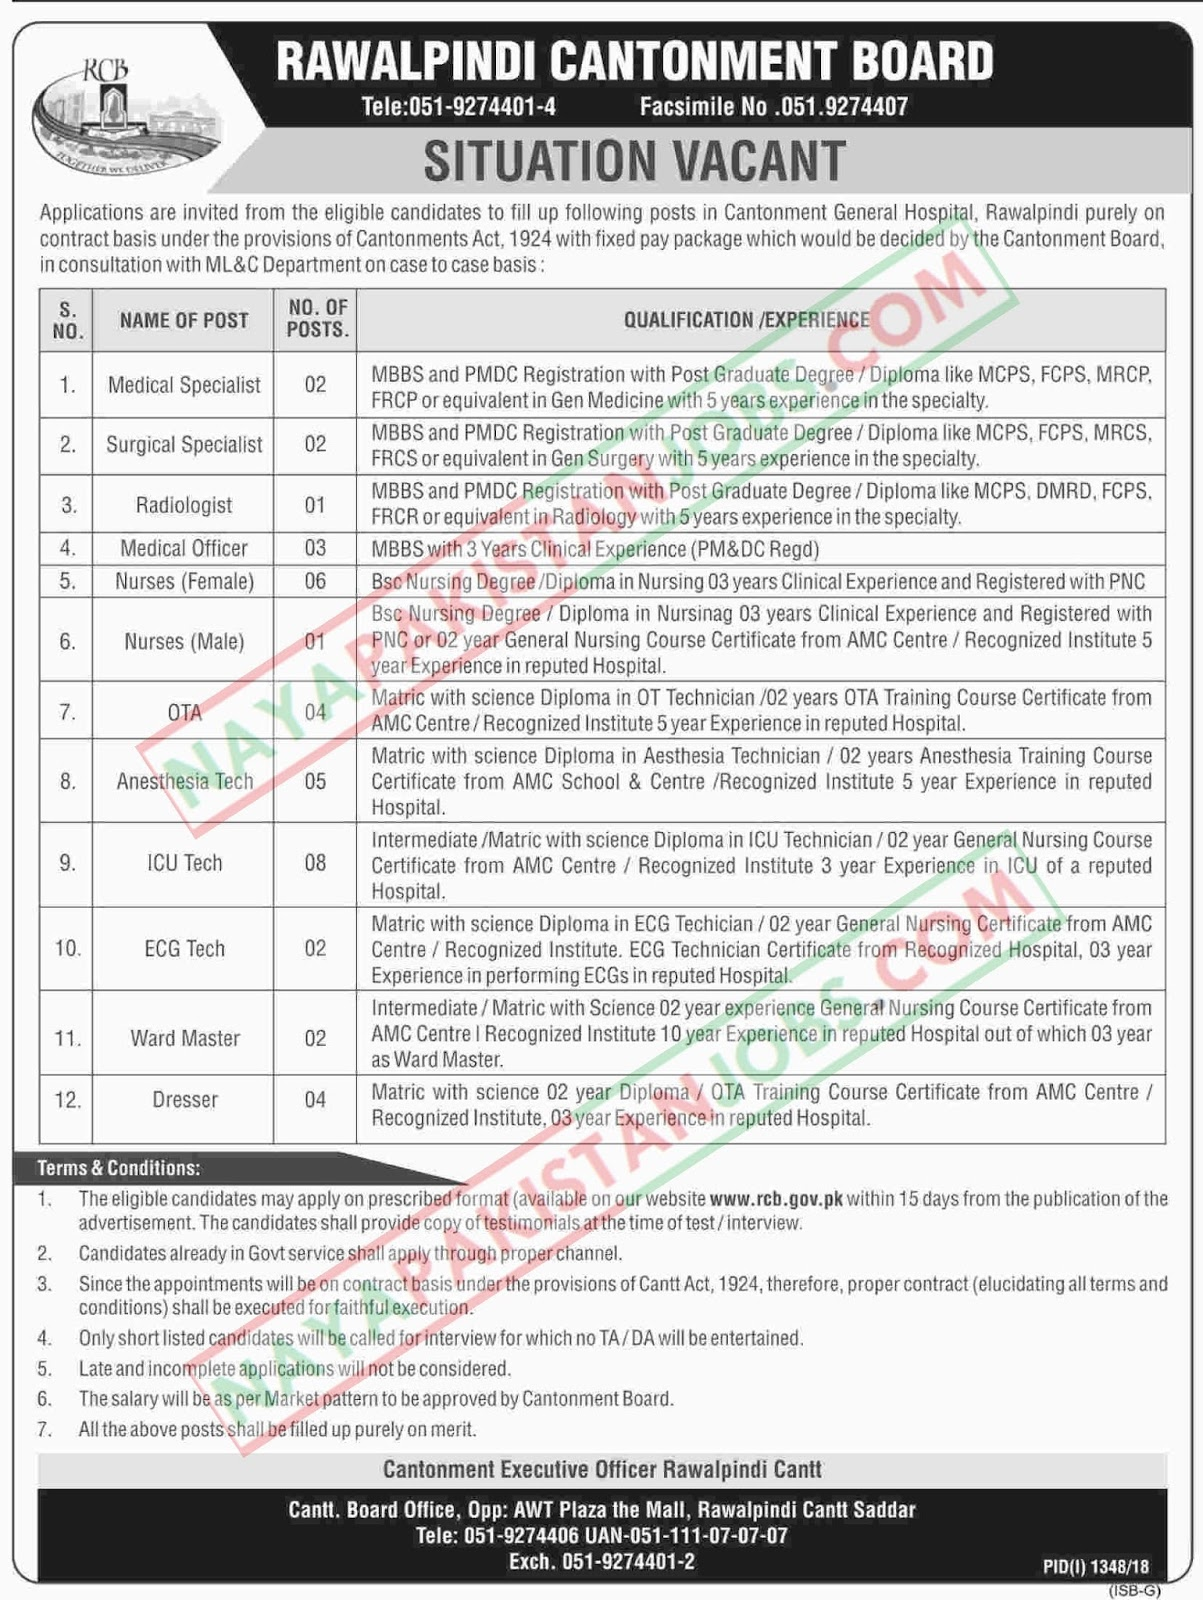 Latest Vacancies Announced in rcb.gov.pk Cantonment Board Rawalpindi 27 September 2018 - Naya Pak Jobs